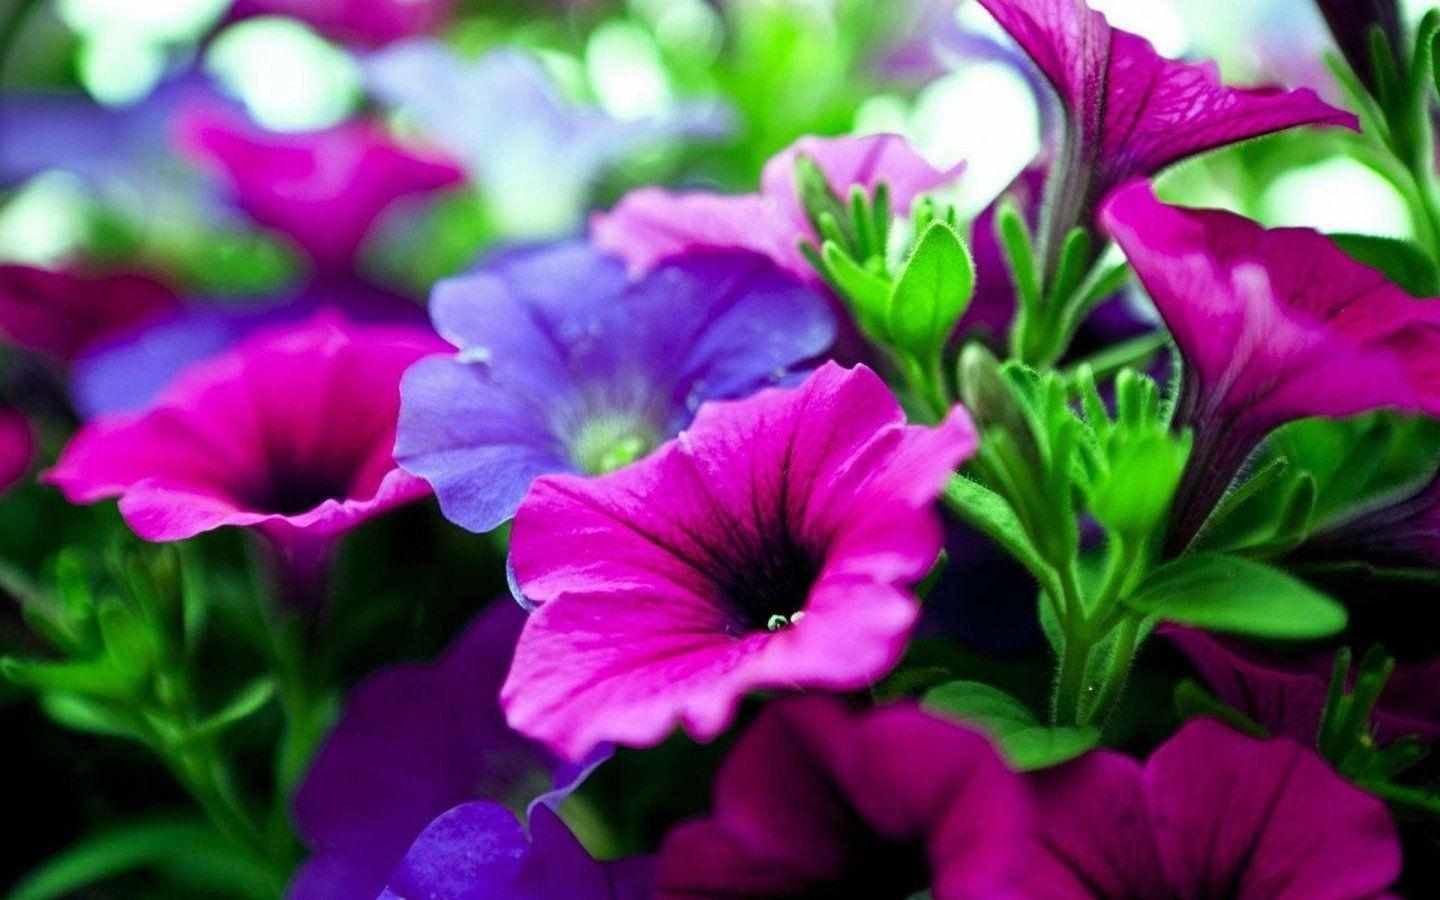 Hd wallpapers nature flowers